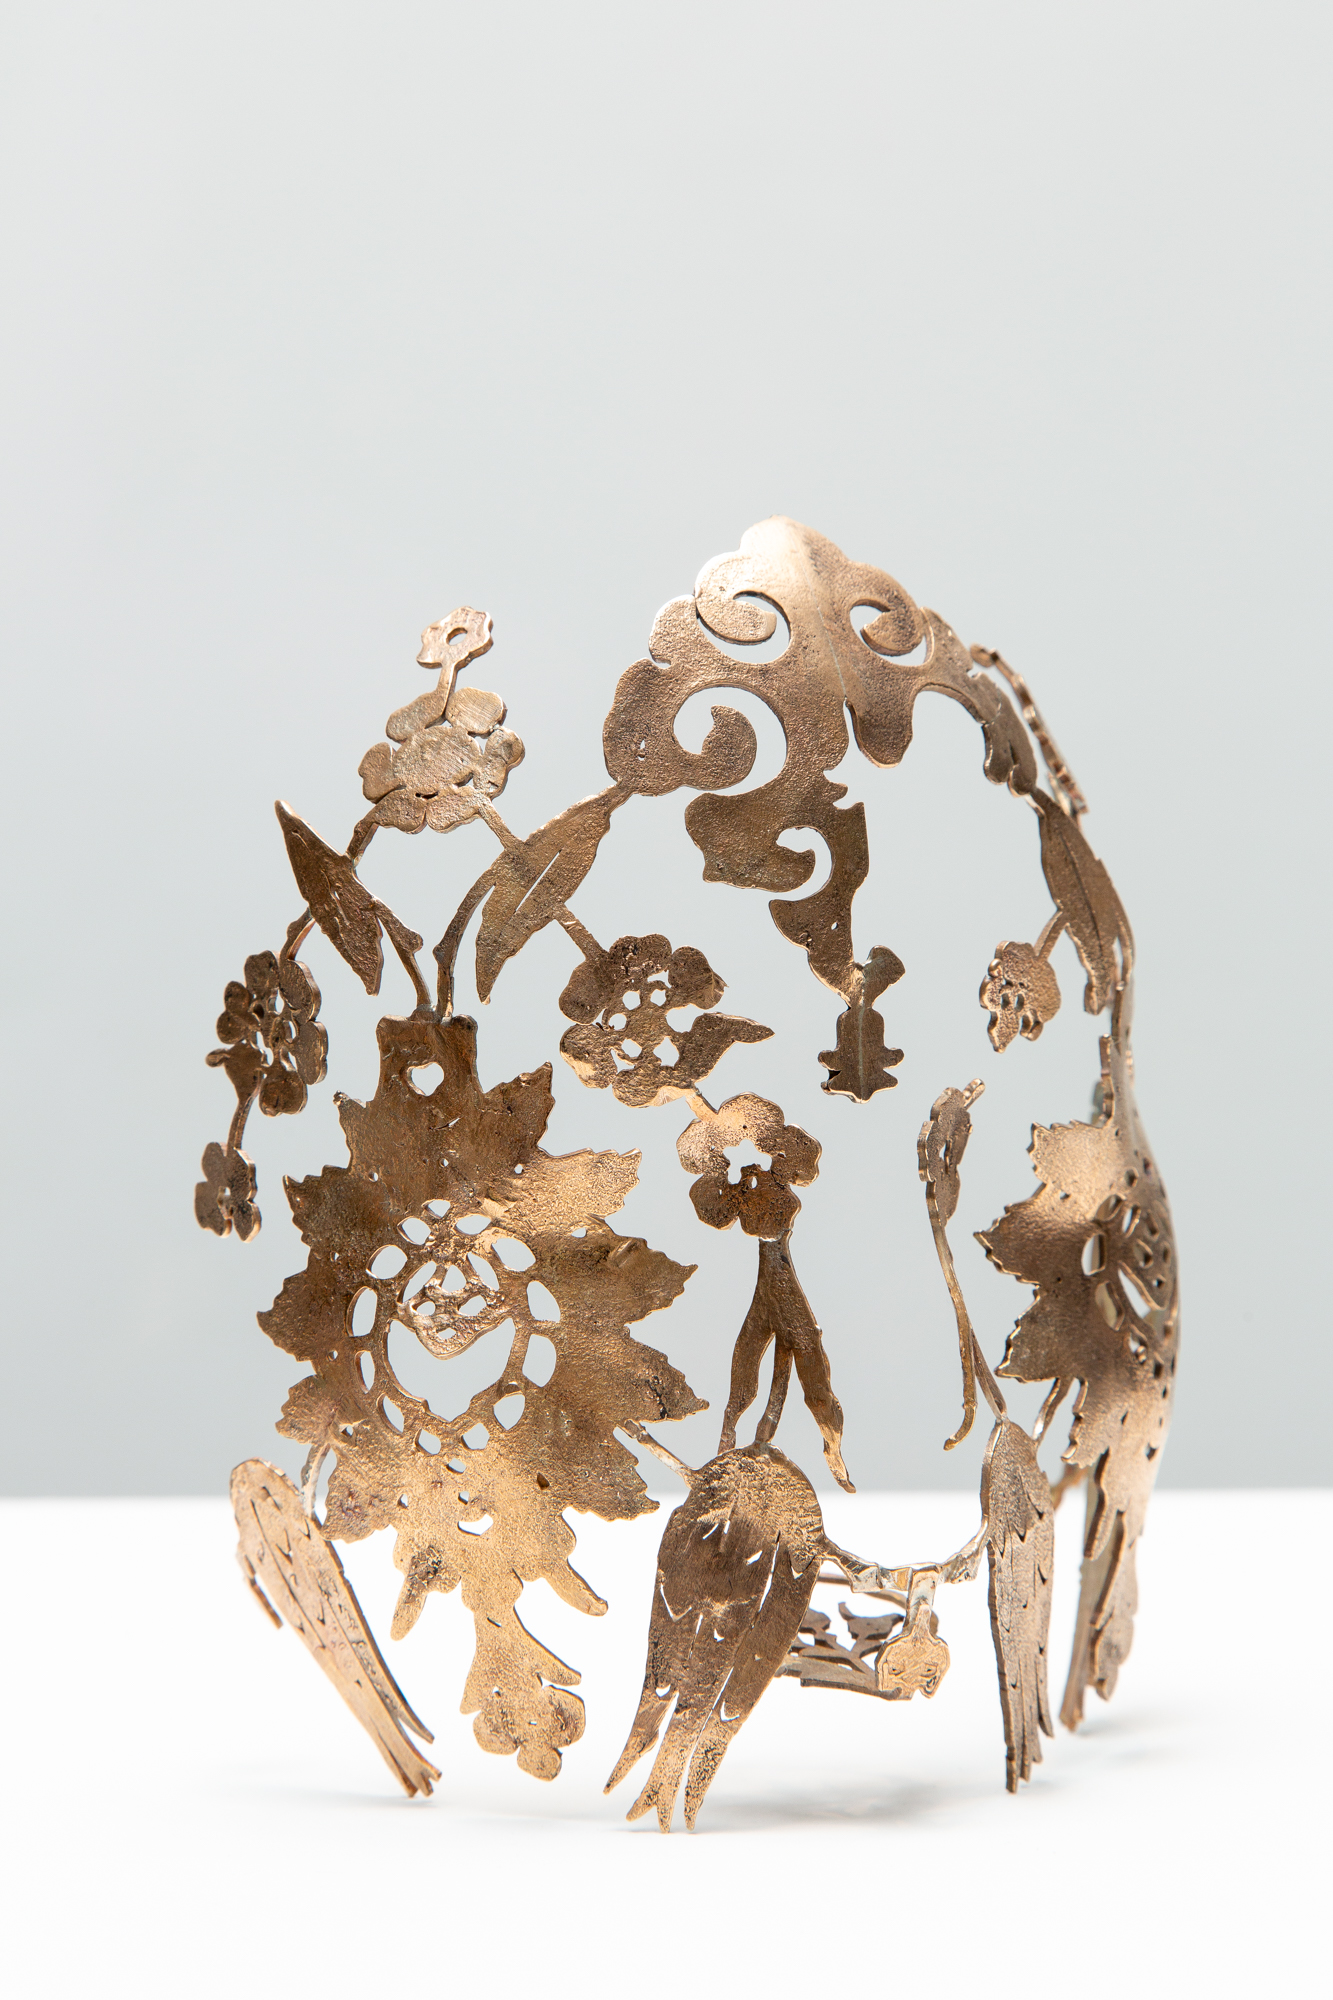 Sera Boeno;Ornament XI: Scold's Bridle with Hataîs, Tulips and Wild Flower Motifs; Bronze object